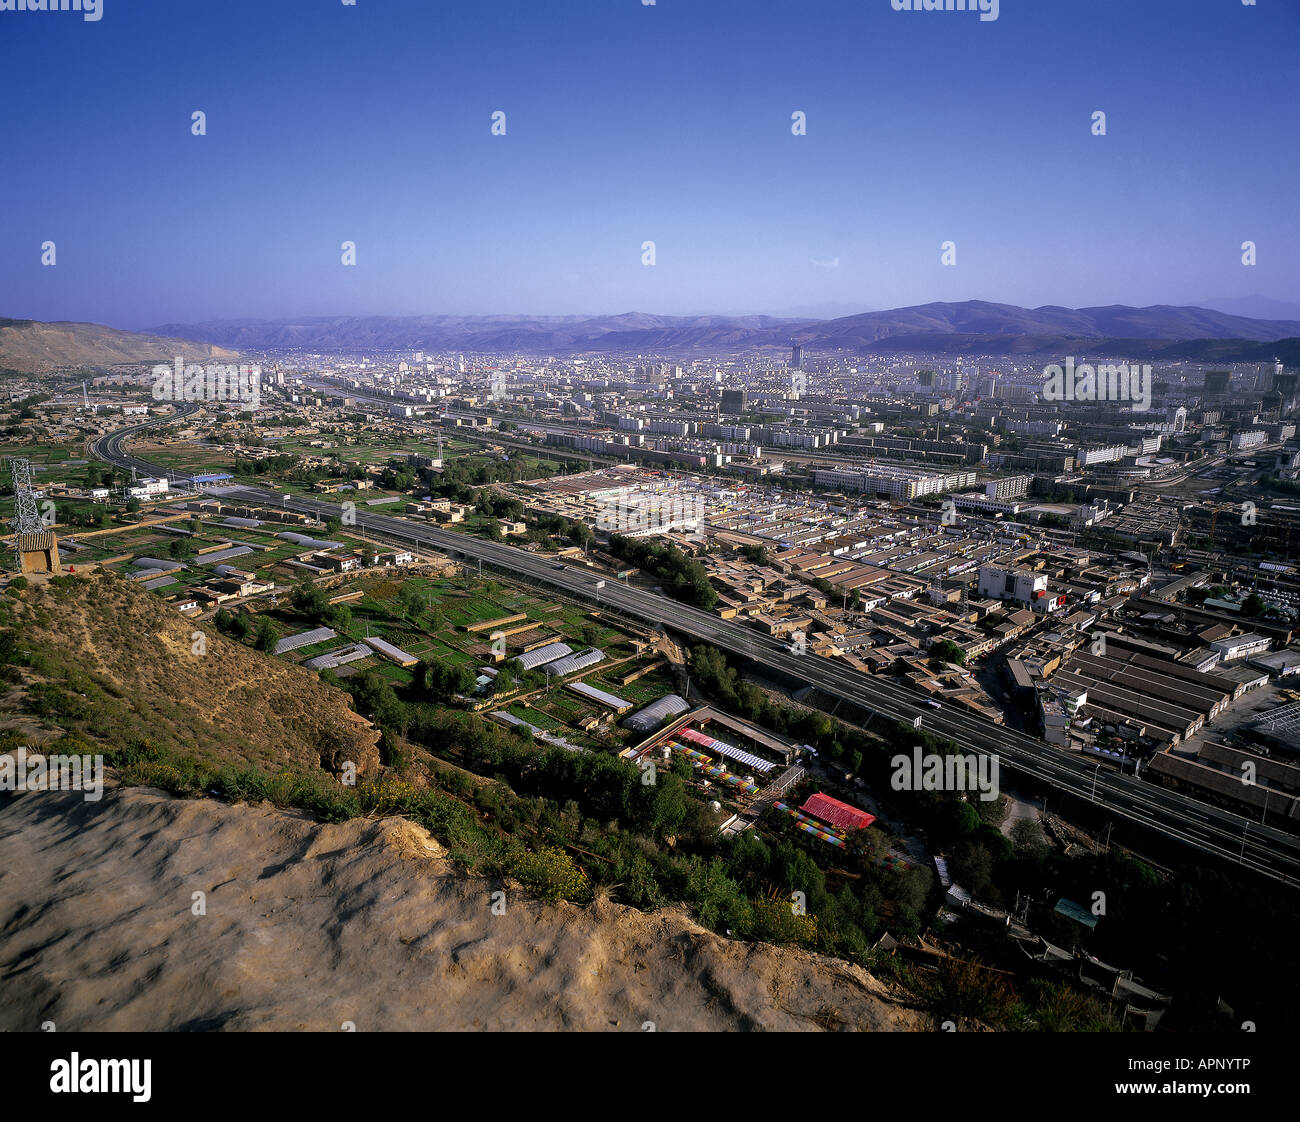 Panoramic view of Xining, capital of Qinghai province, China. - Stock Image